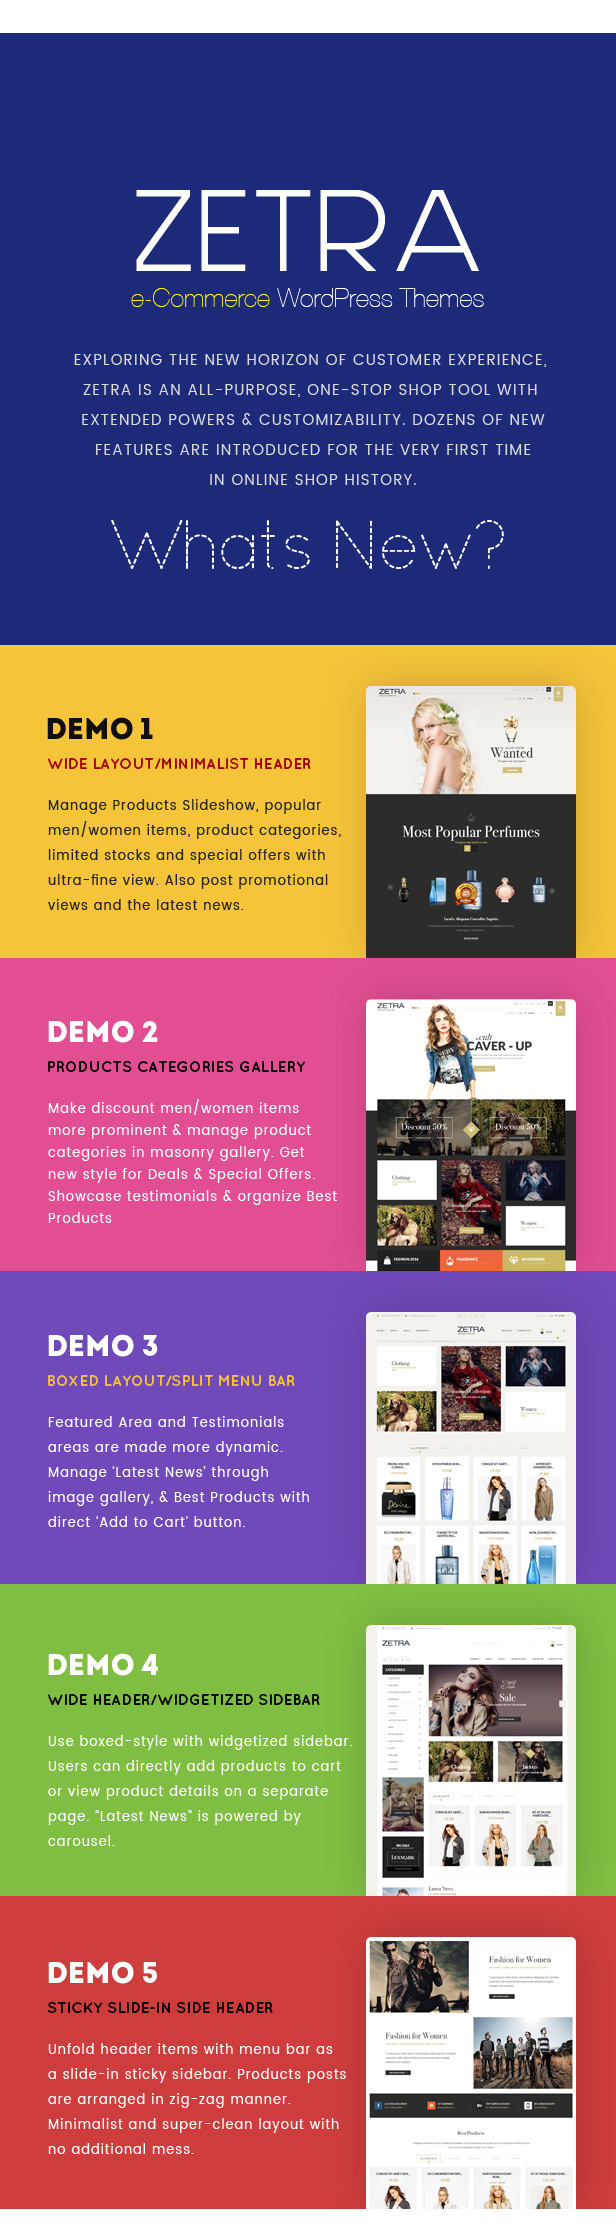 Zetra - A WordPress Theme for eCommerce Websites